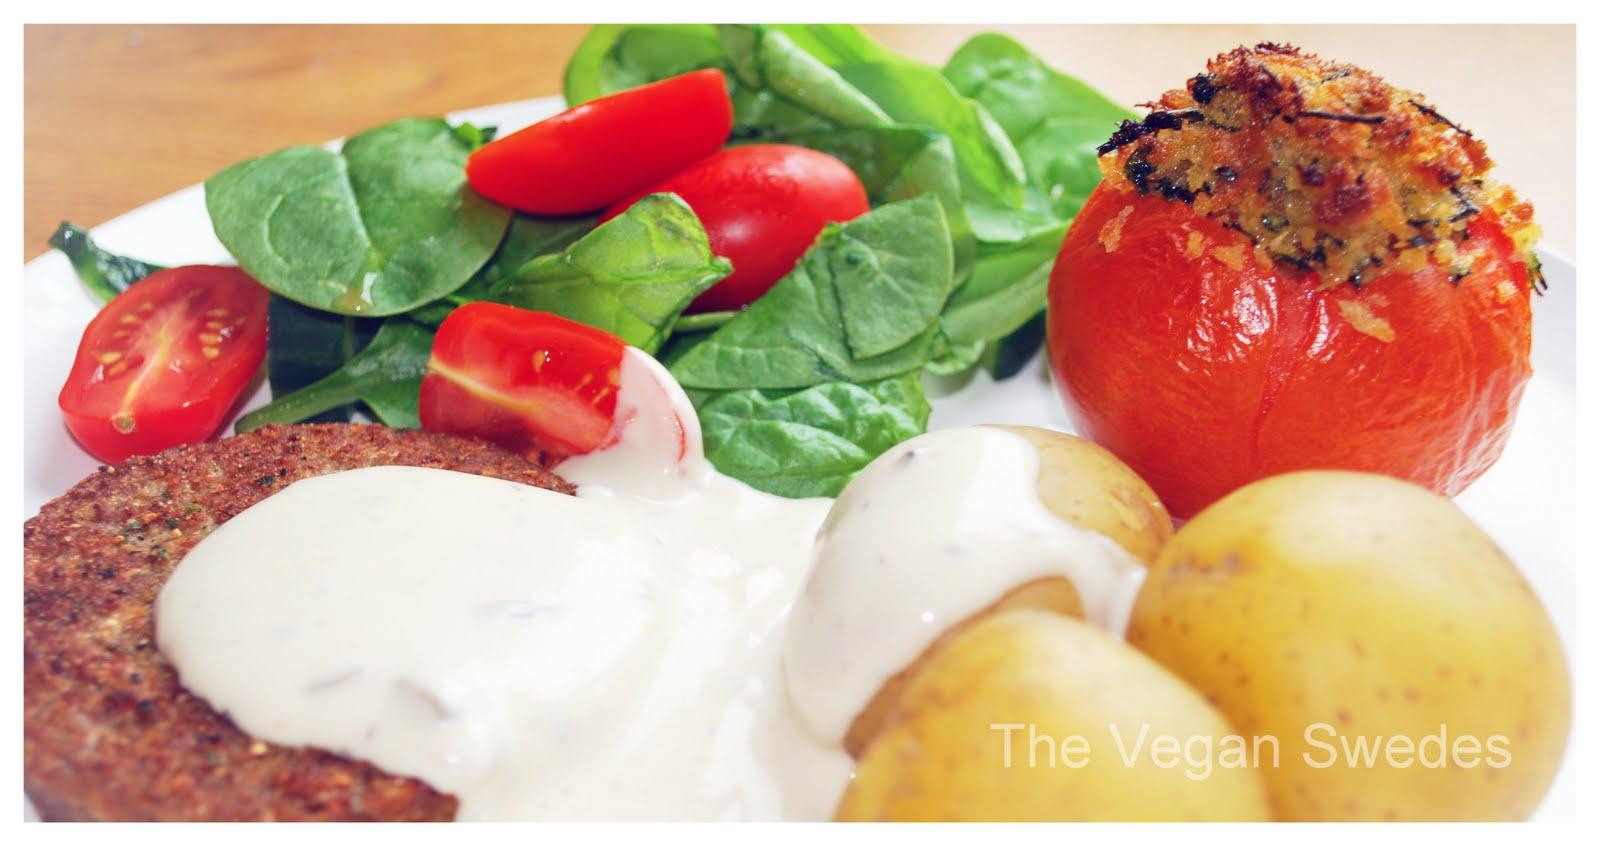 The Vegan Swedes: Baked Tomatoes w/ Crispy Filling